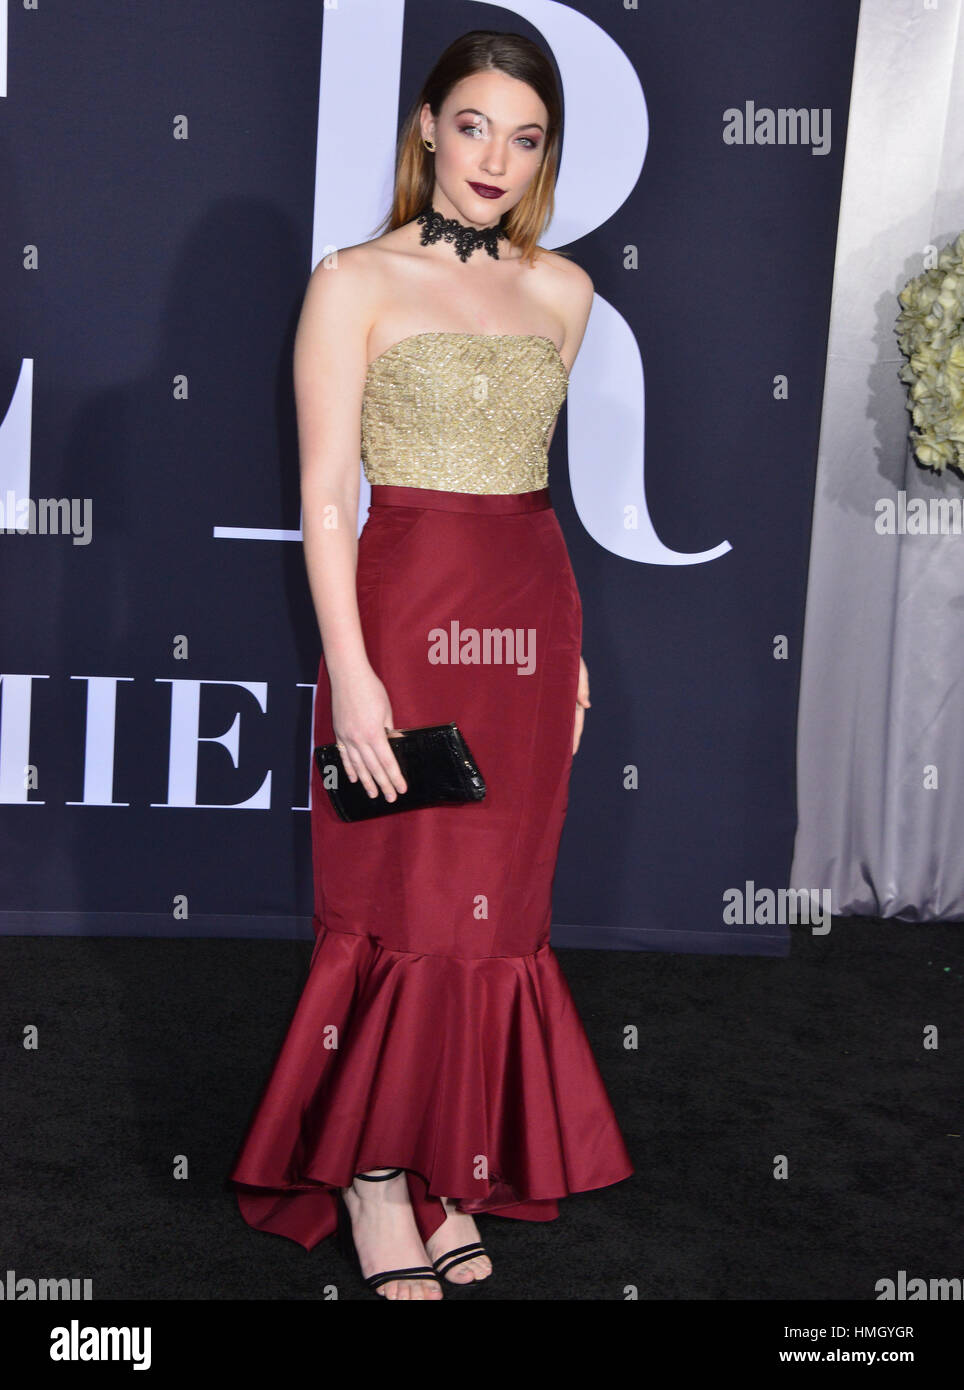 Los Angeles, USA. 02nd Feb, 2017. Violett Beane 113 arriving at the Fifty Shades Darker premiere at the ACE Hotel Stock Photo